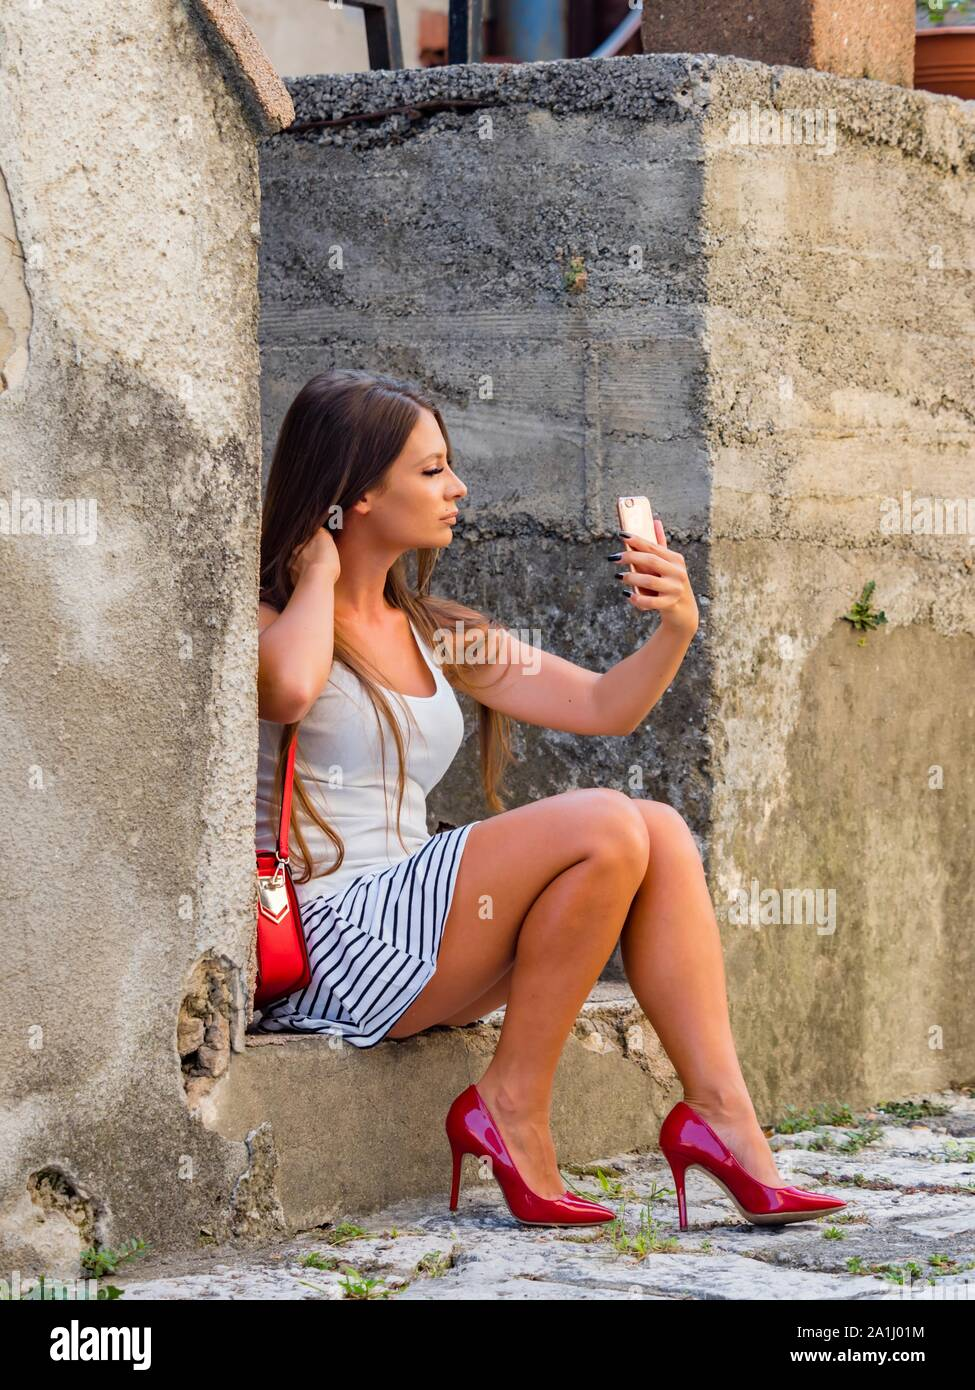 Attractive young woman legs in heels taking selfie looking up into camera cellphone sitting color vertical feminine behavior Stock Photo